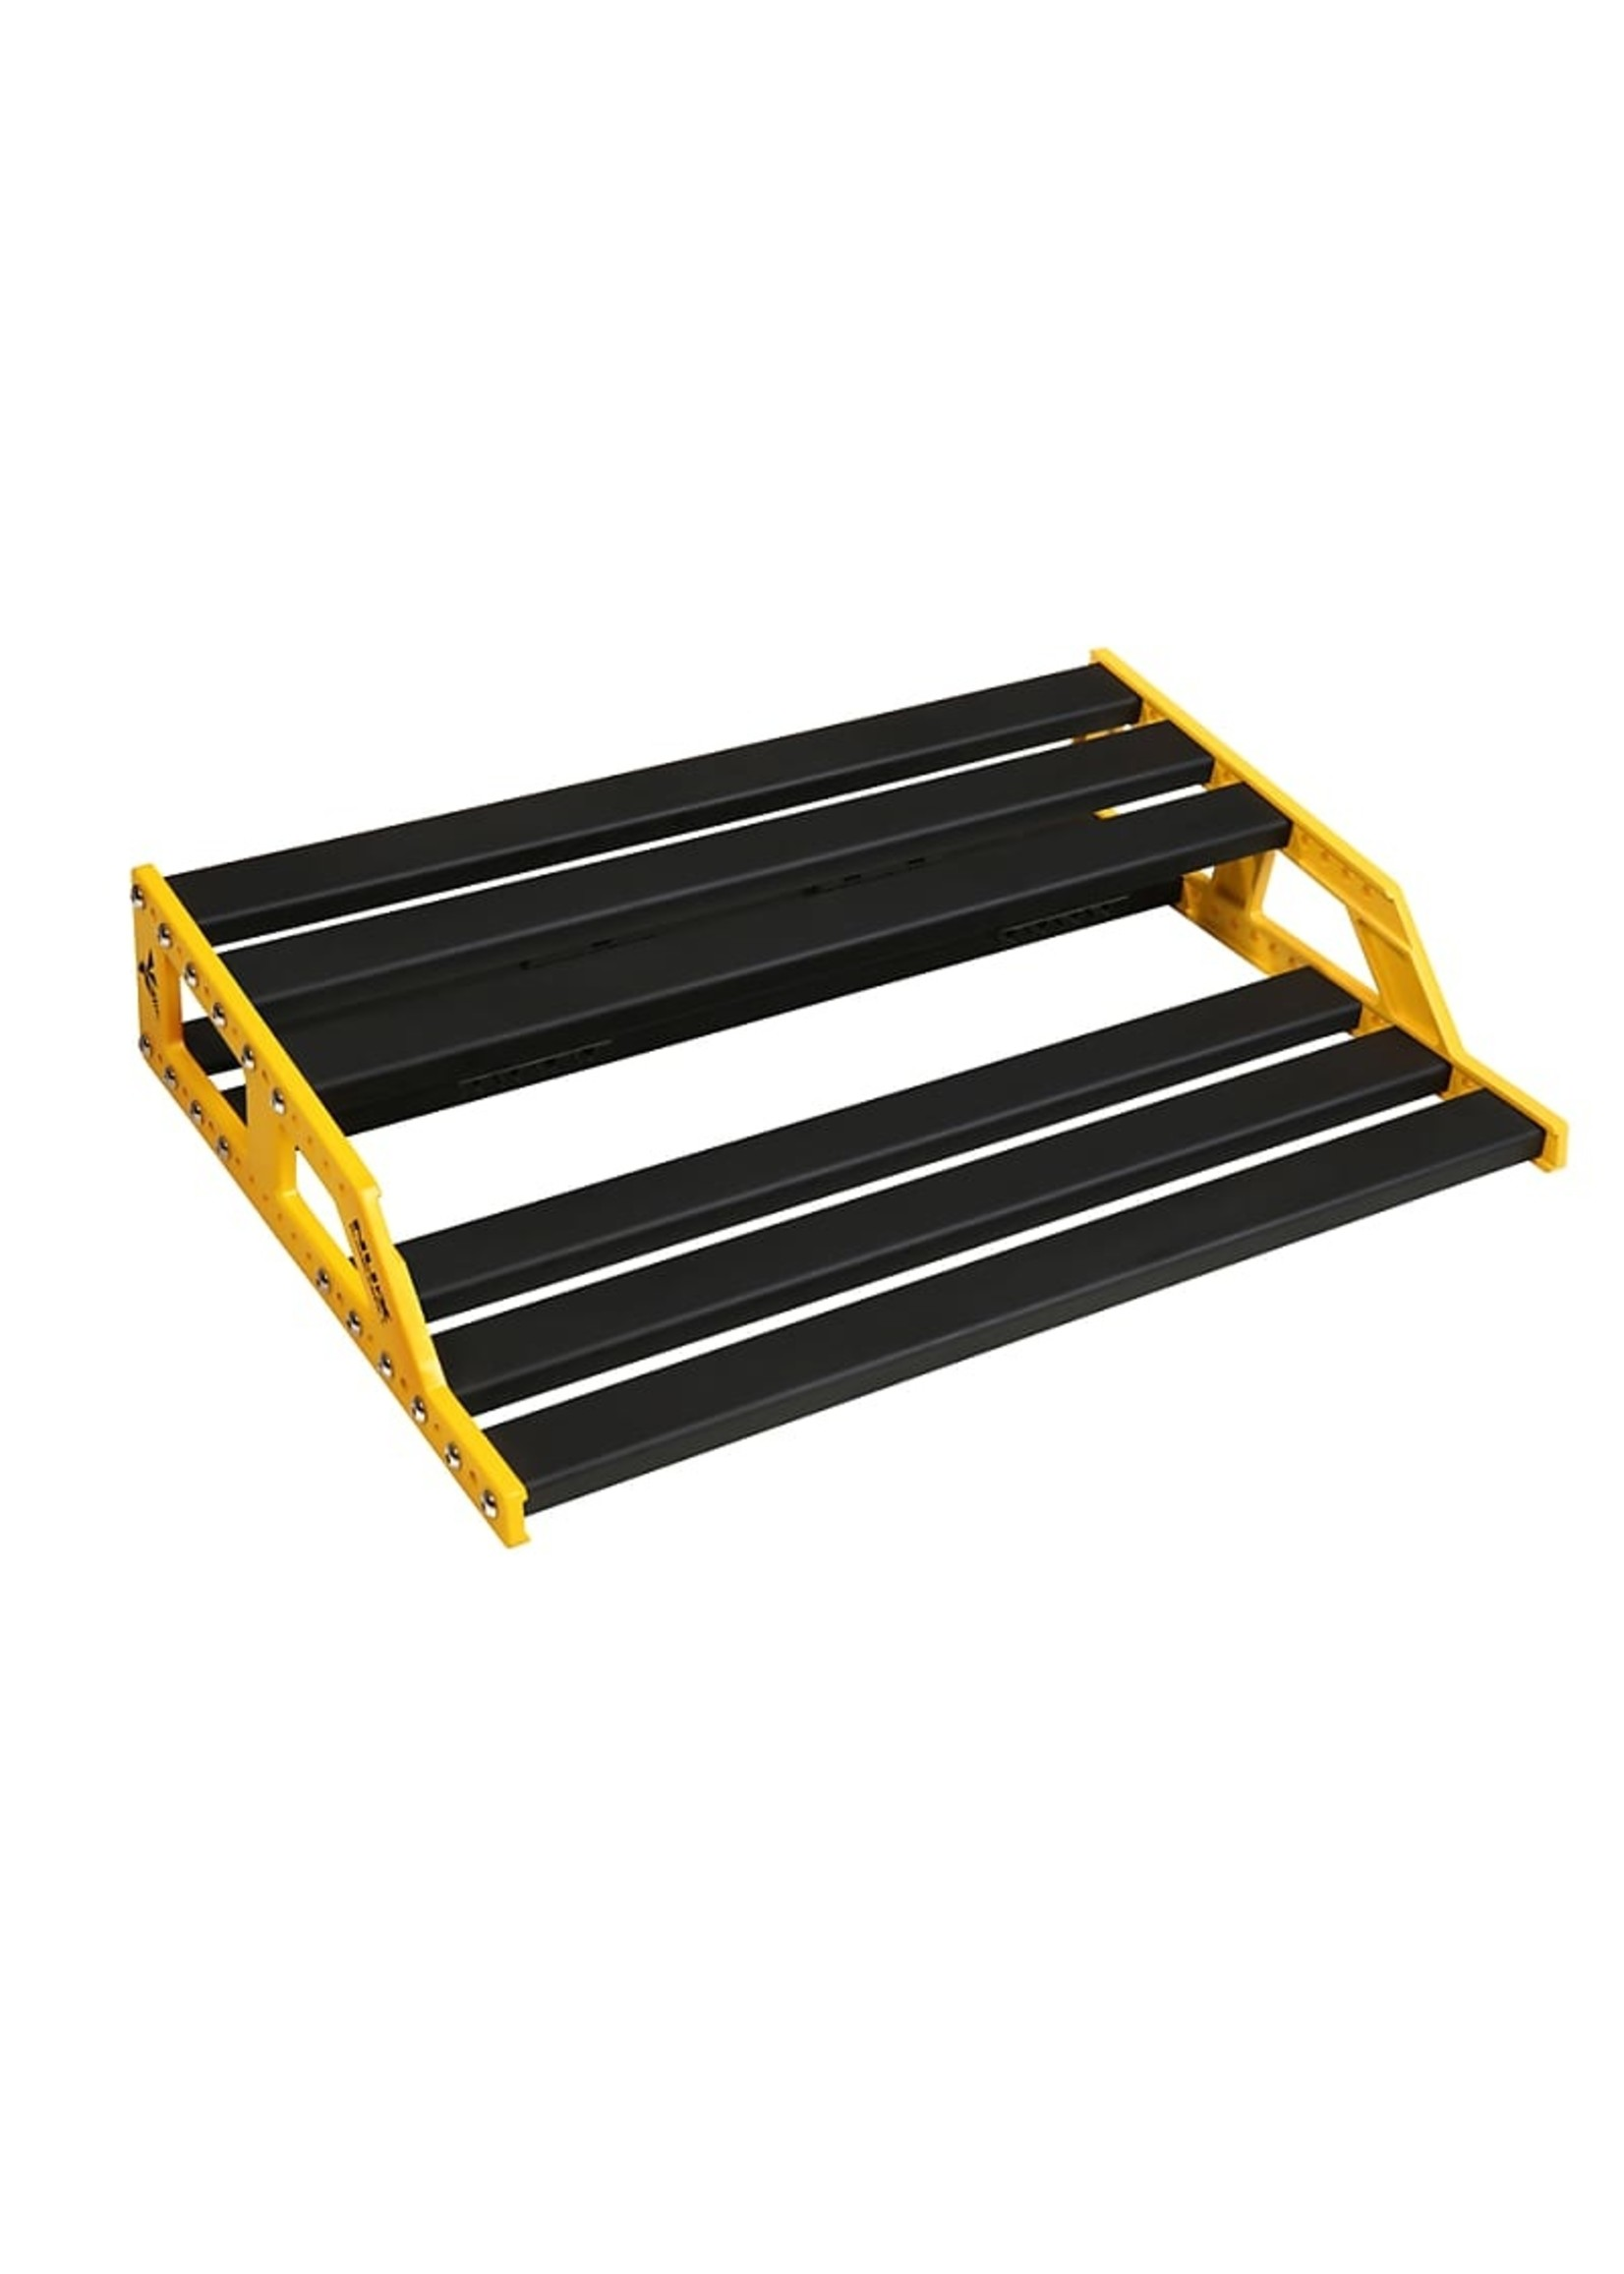 NuX NuX Bumblebee-L Large Pedal Board w/ Bag